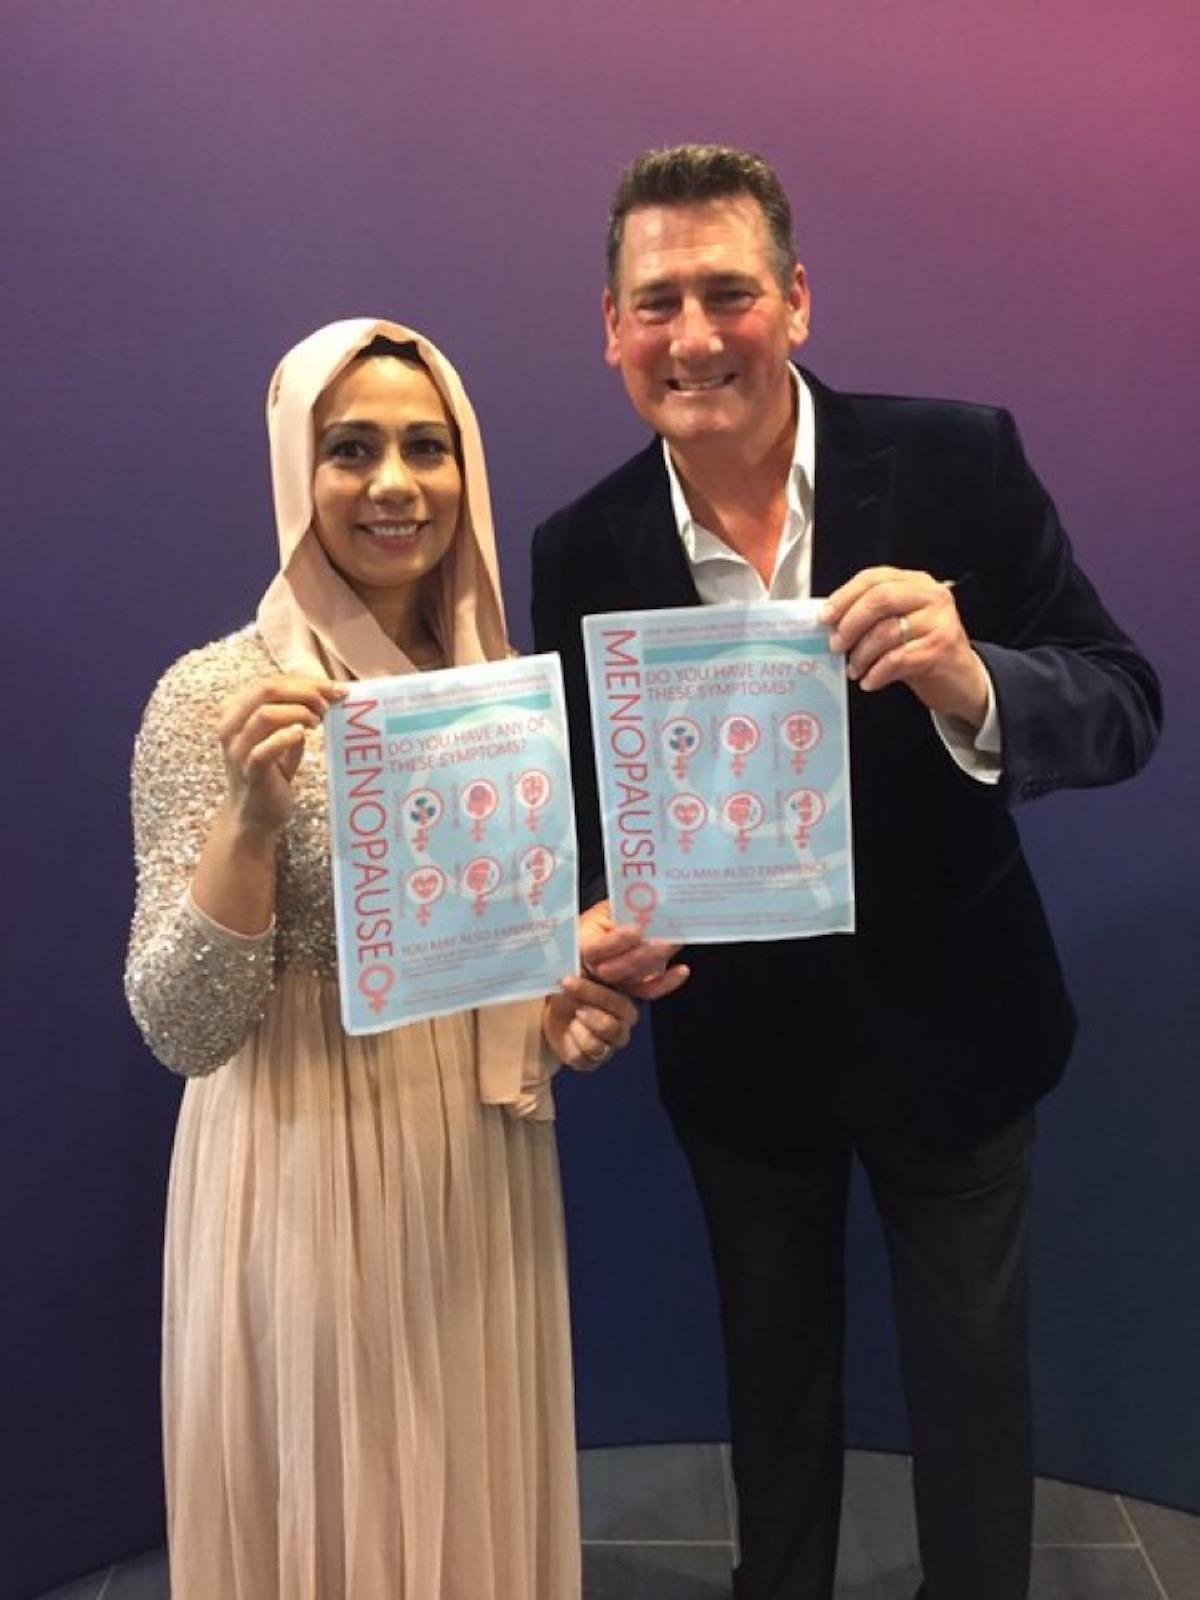 The beautiful Dr Nighat Arif and Spandau Ballet's Tony Hadley support #KnowYourMenopause